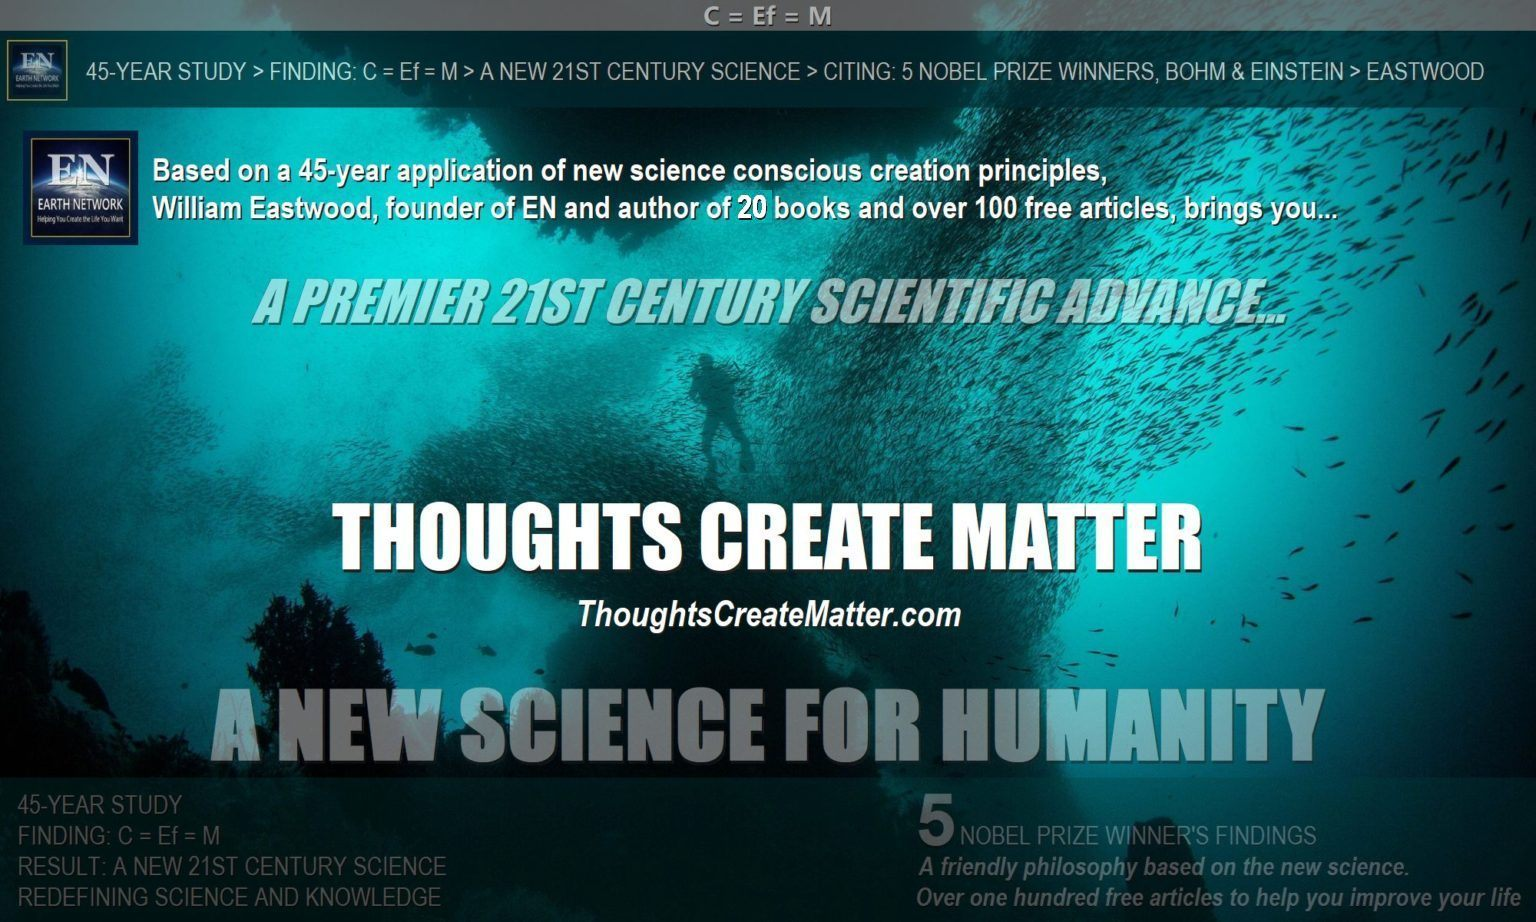 Thoughts create matter. A man swimming in a school of fish depicts Einstein's colleague David Bohm's position that when put in plasma electrons seemed to behave as if they were alive, and that there is no clear distinction between thoughts and matter. Thoughts can and do create matter. Consciousness creates reality